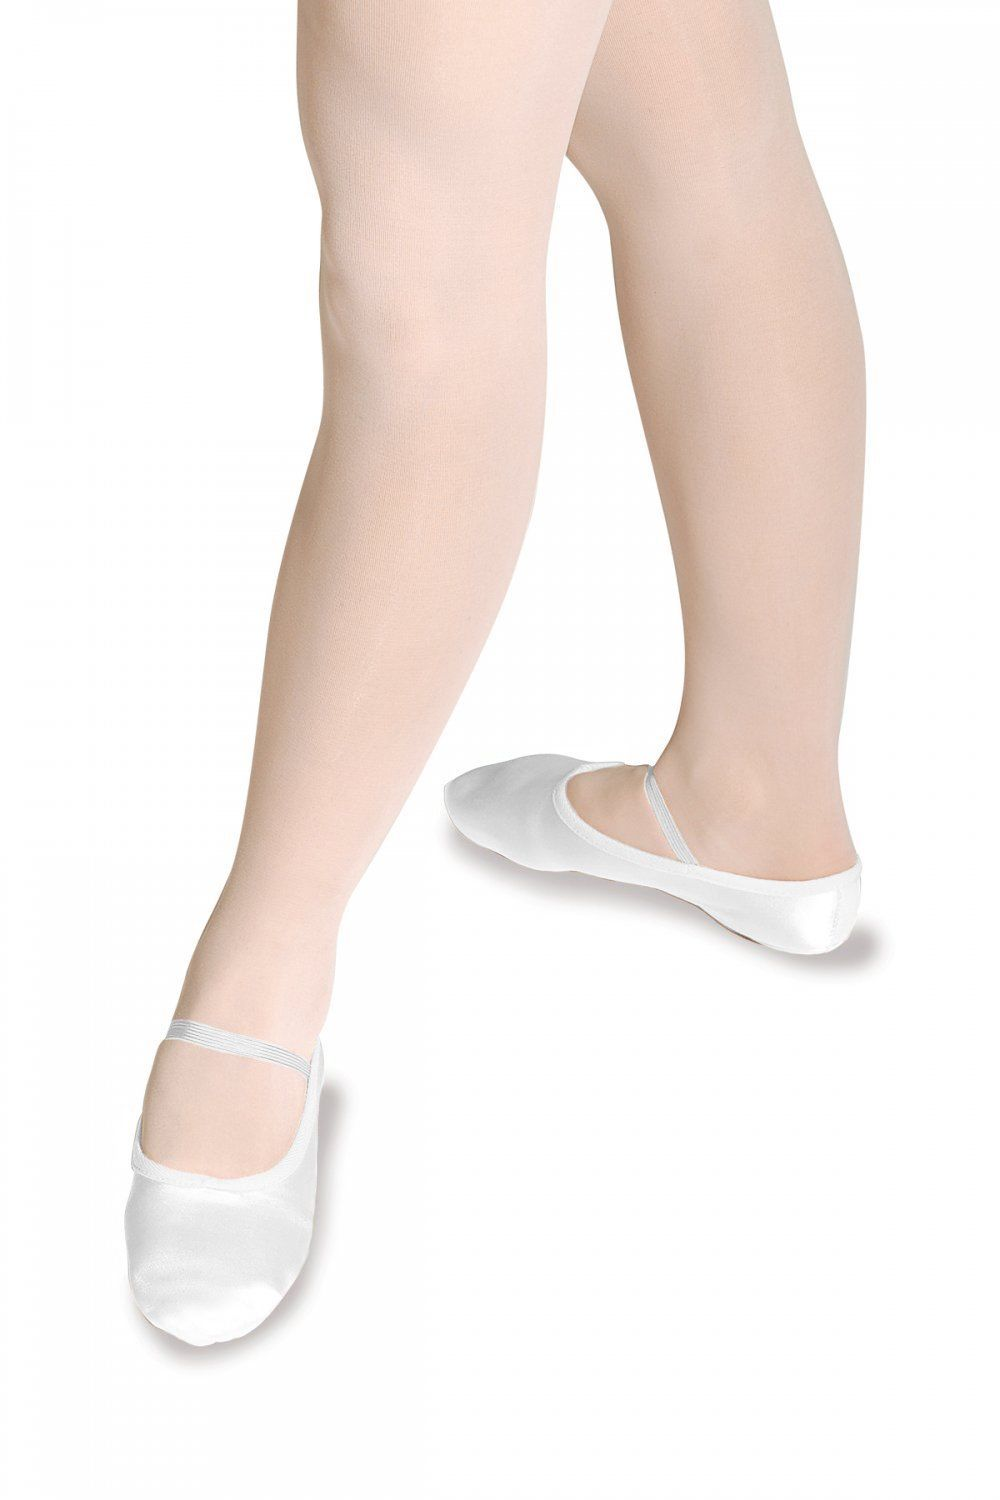 Roch Valley Satin ballet dance shoes in White & Pink